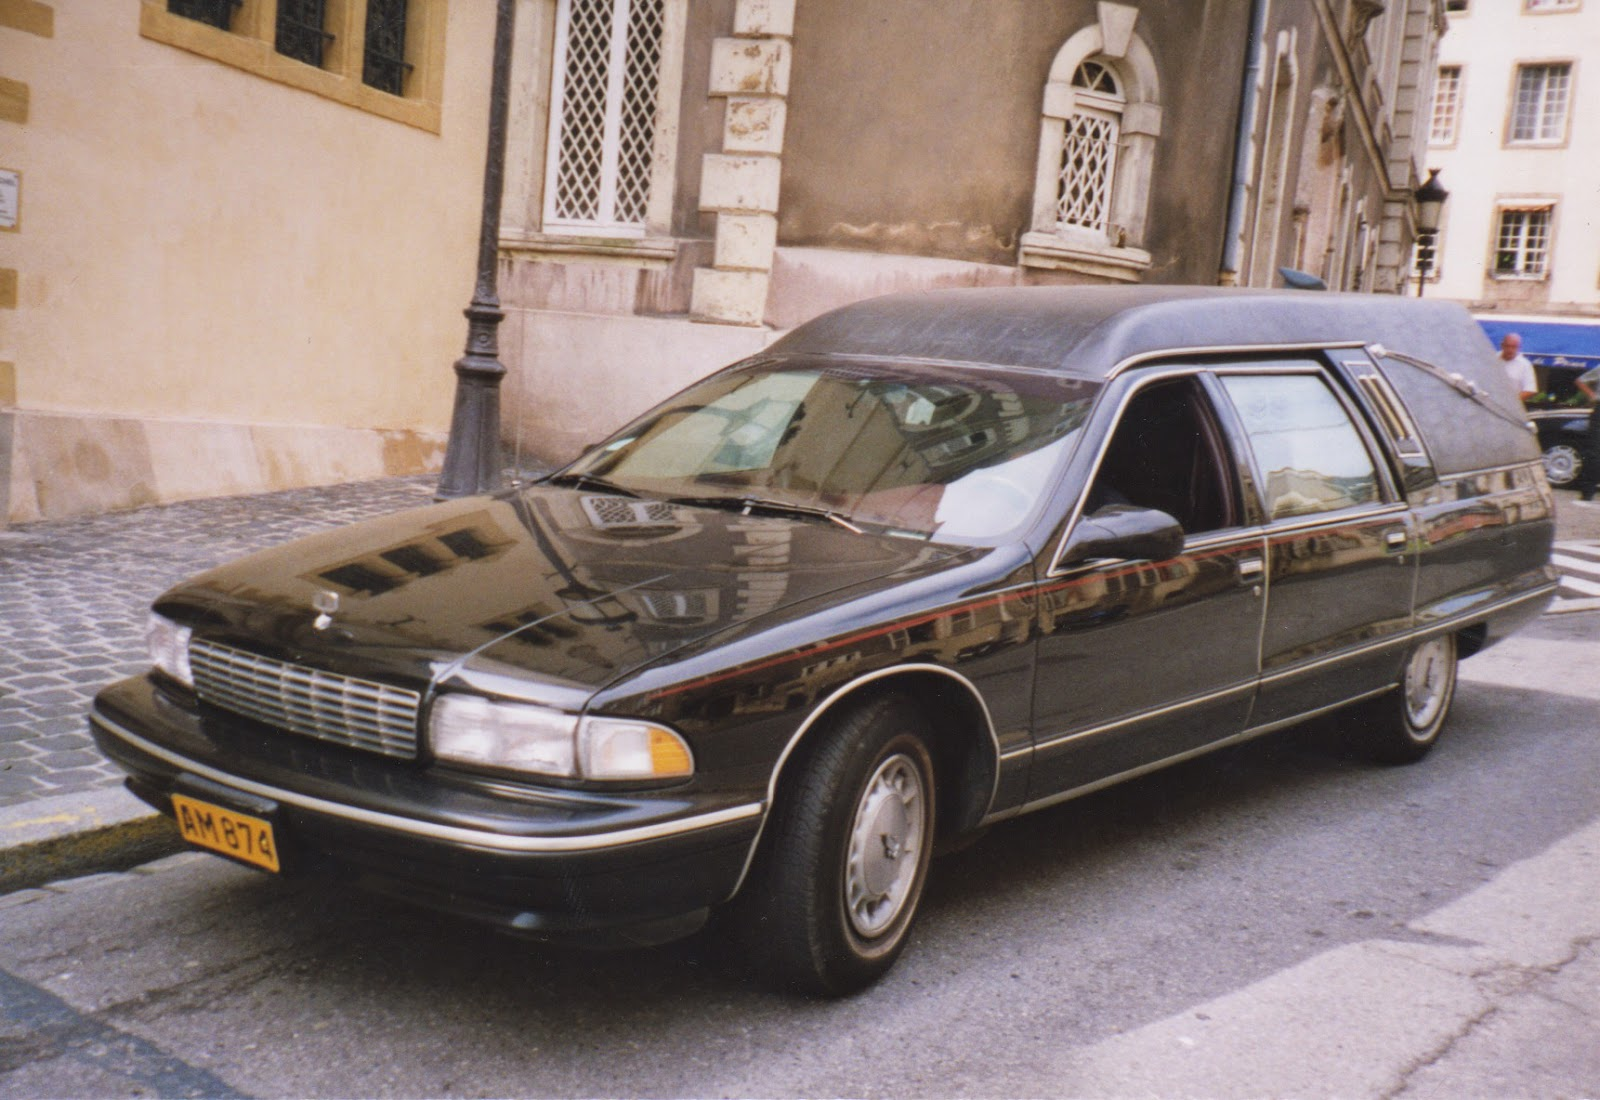 All Chevy 1996 chevrolet caprice wagon : 1991-1996 Chevrolet Caprice Hearse, Luxembourg | SPOT A CAR